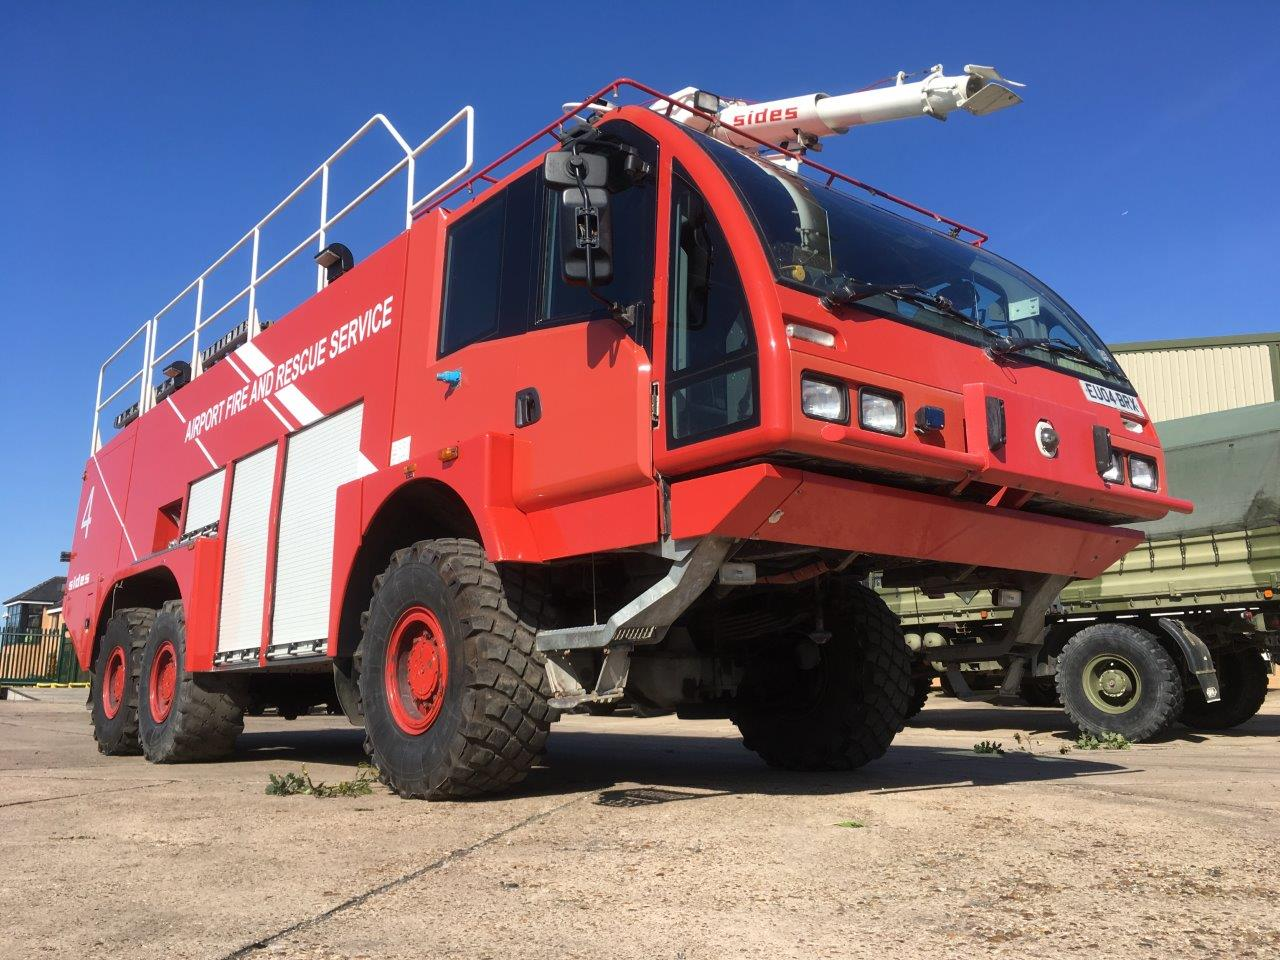 Now available a Sides 6x6 VMA112 airport crash tender